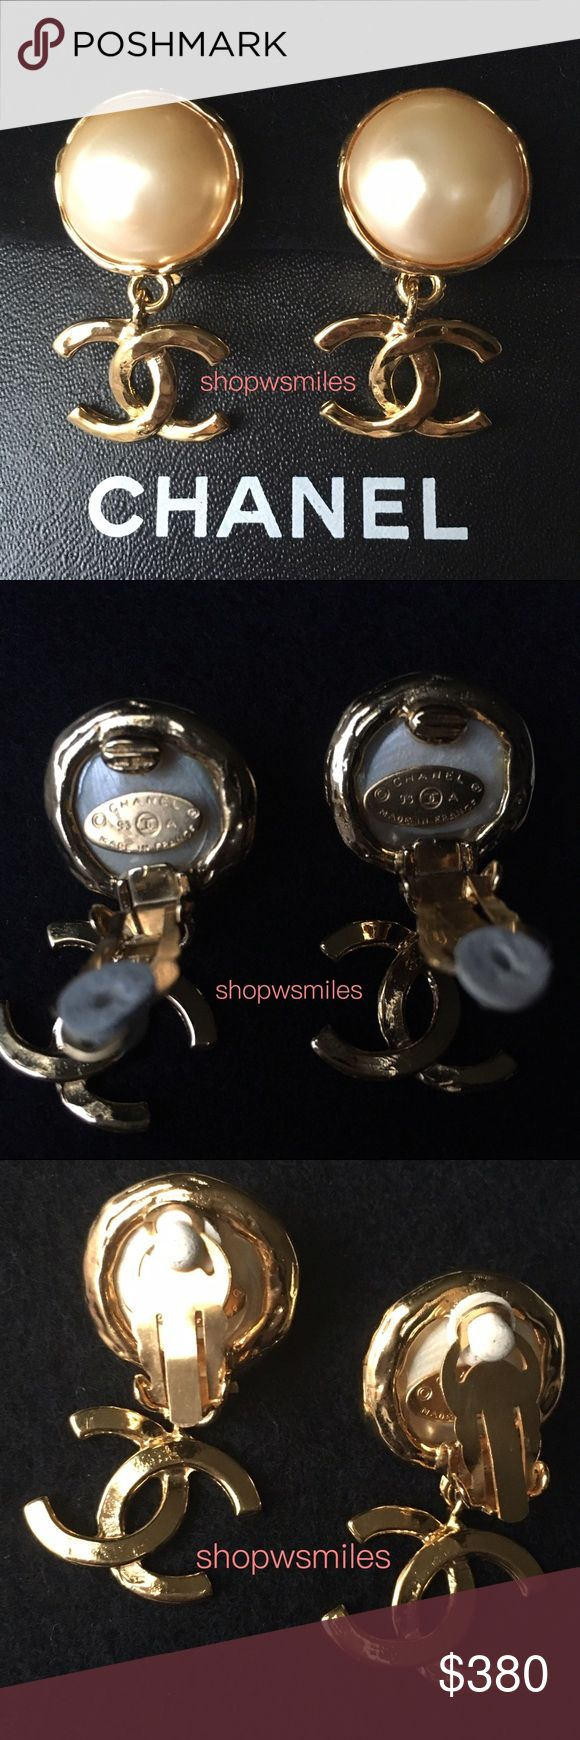 """Authentic CHANEL Earrings 🚫No Trades🚫 AUTHENTIC CHANEL GOLDTONE FAUX PEARL CC DROP DANGLE CLIP ON EARRINGS  🚫PRICE IS FIRM. SORRY, NO TRADES.🚫 - EXCELLENT condition - Made in France, 93A - Faux Pearl Diameter: 0.8"""" (approx) - Earring Length: 1.7"""" (approx) - Comes with: Box Chanel Jewelry Earrings"""